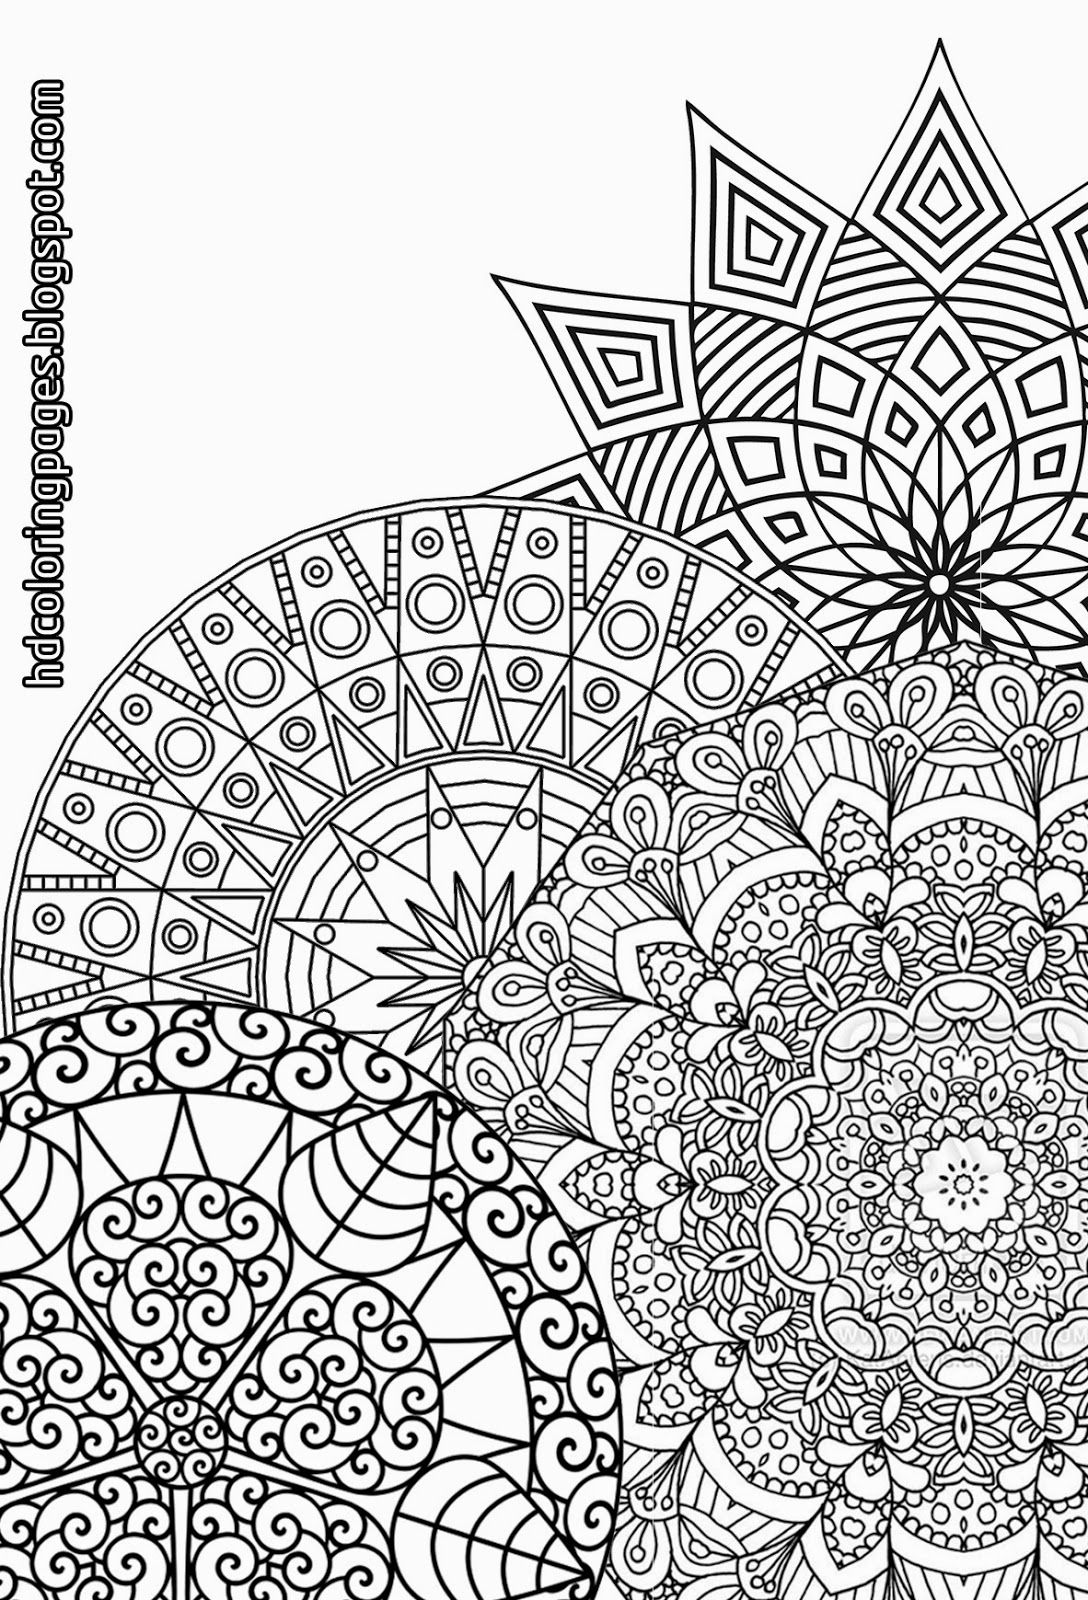 coloring pages for adults patterns peaceful owl owls adult coloring pages patterns for coloring pages adults